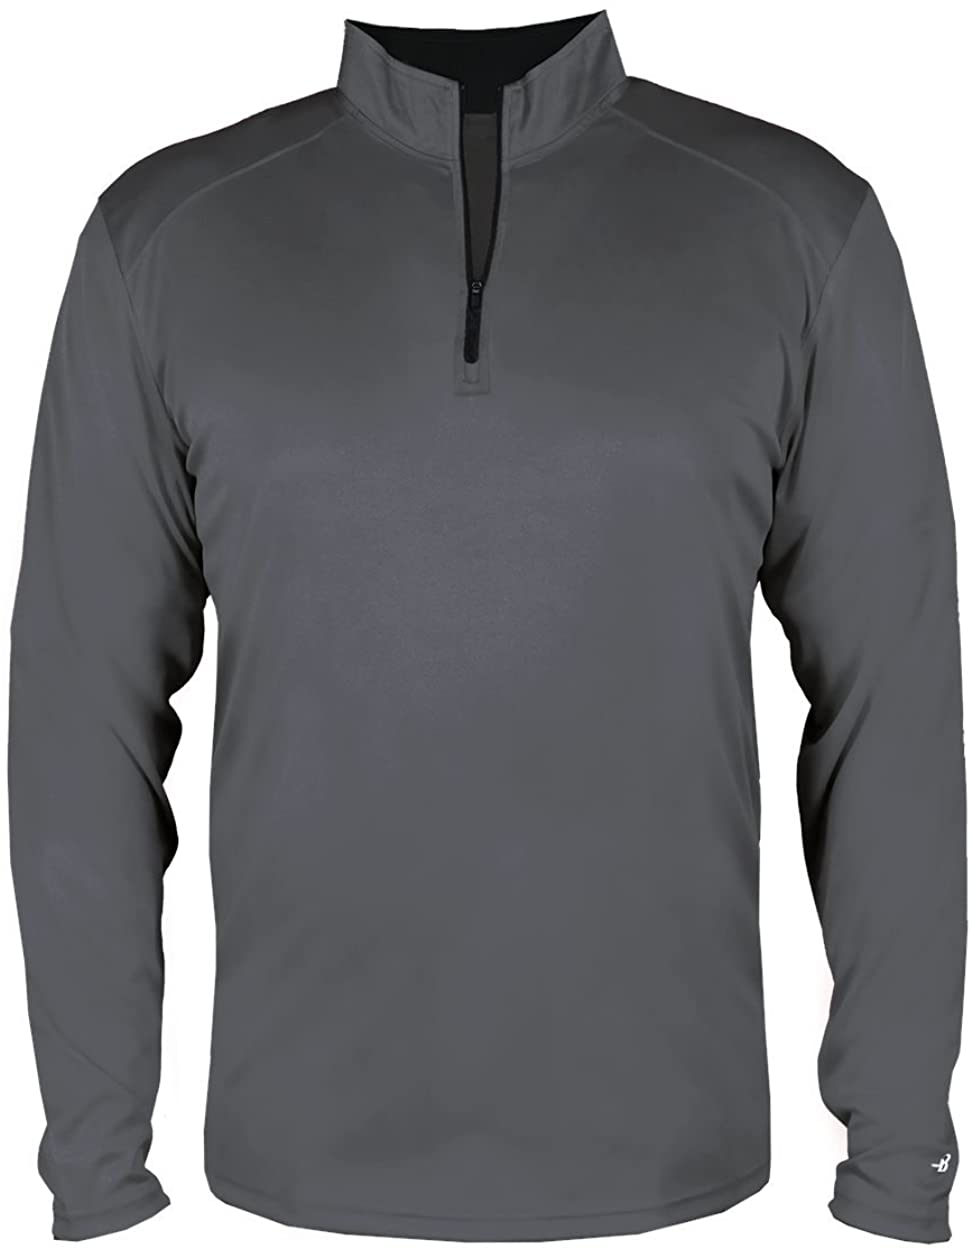 Graphite Adult XL Long Sleeve 1/4 Zip Pullover Wicking Sports Jacket